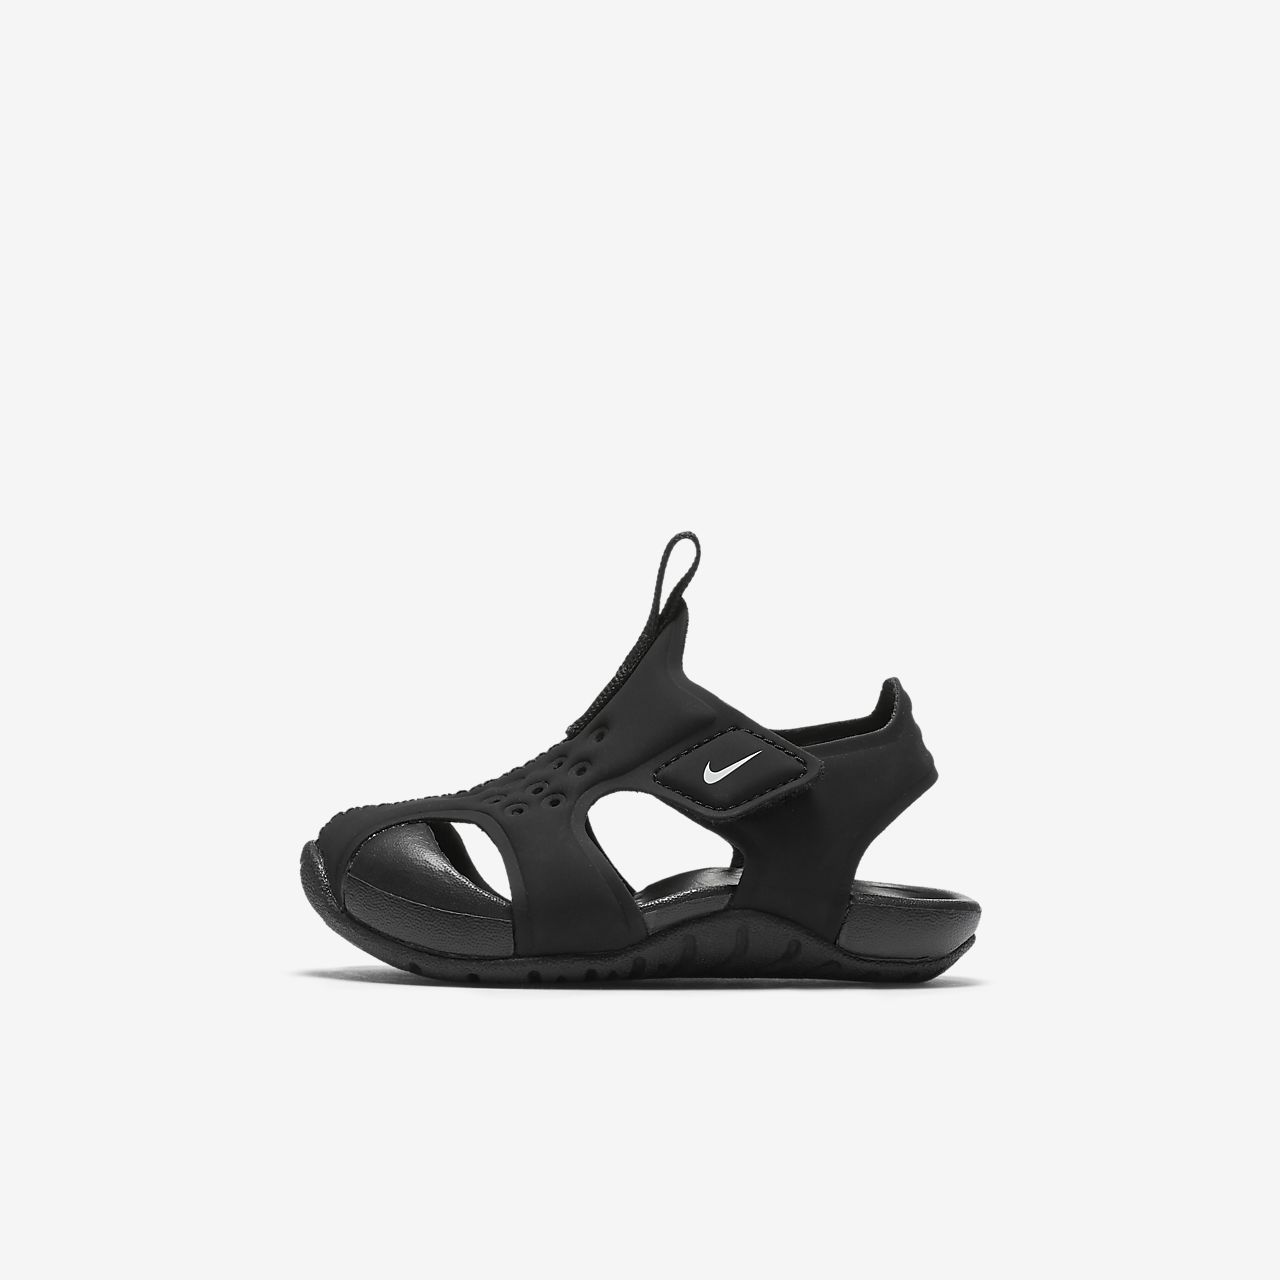 c836cfc44ae6 ... discount nike sunray protect 2 baby toddler sandal fc4f6 cc91a